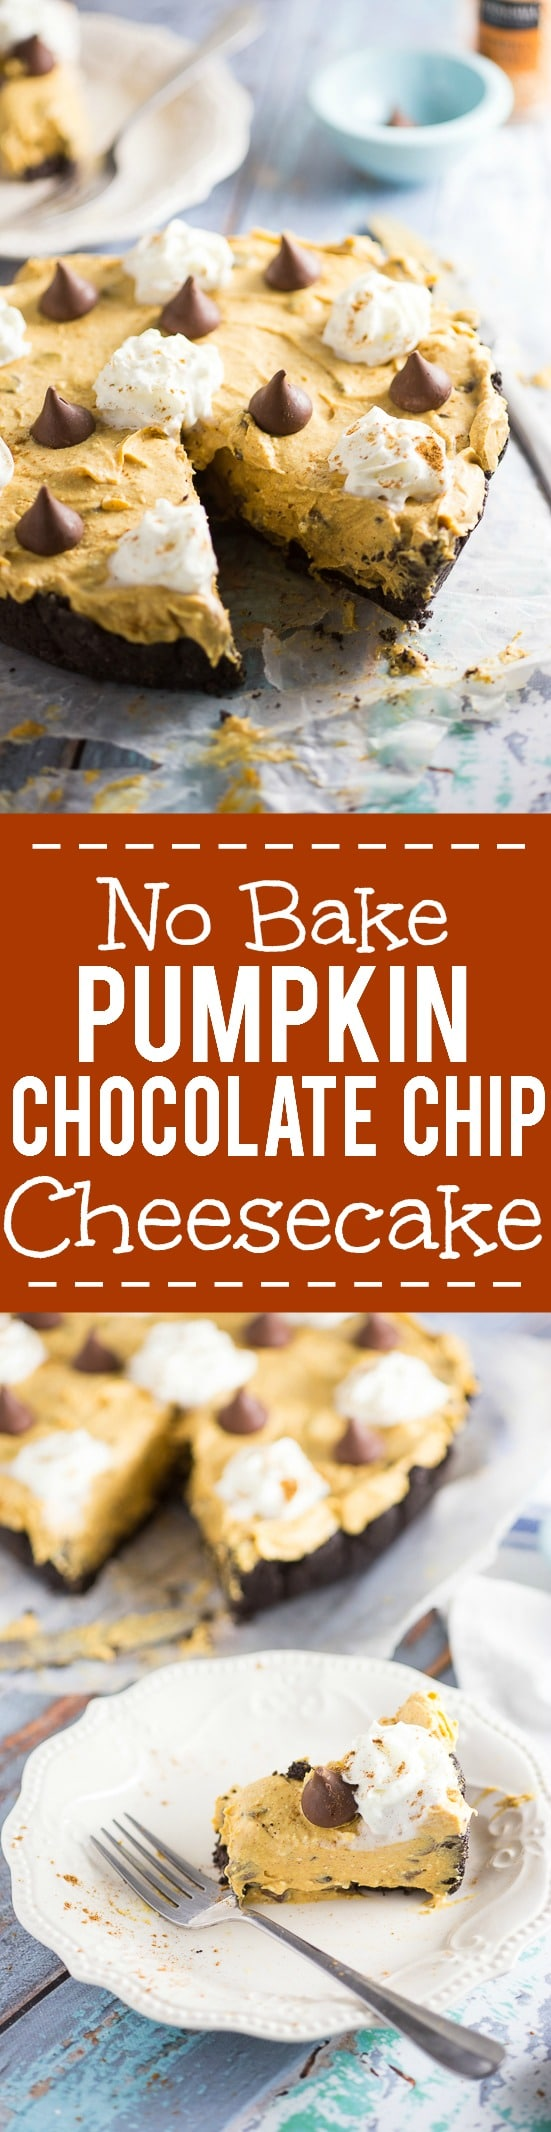 easy No Bake Pumpkin Chocolate Cheesecake with a no bake pumpkin spice ...